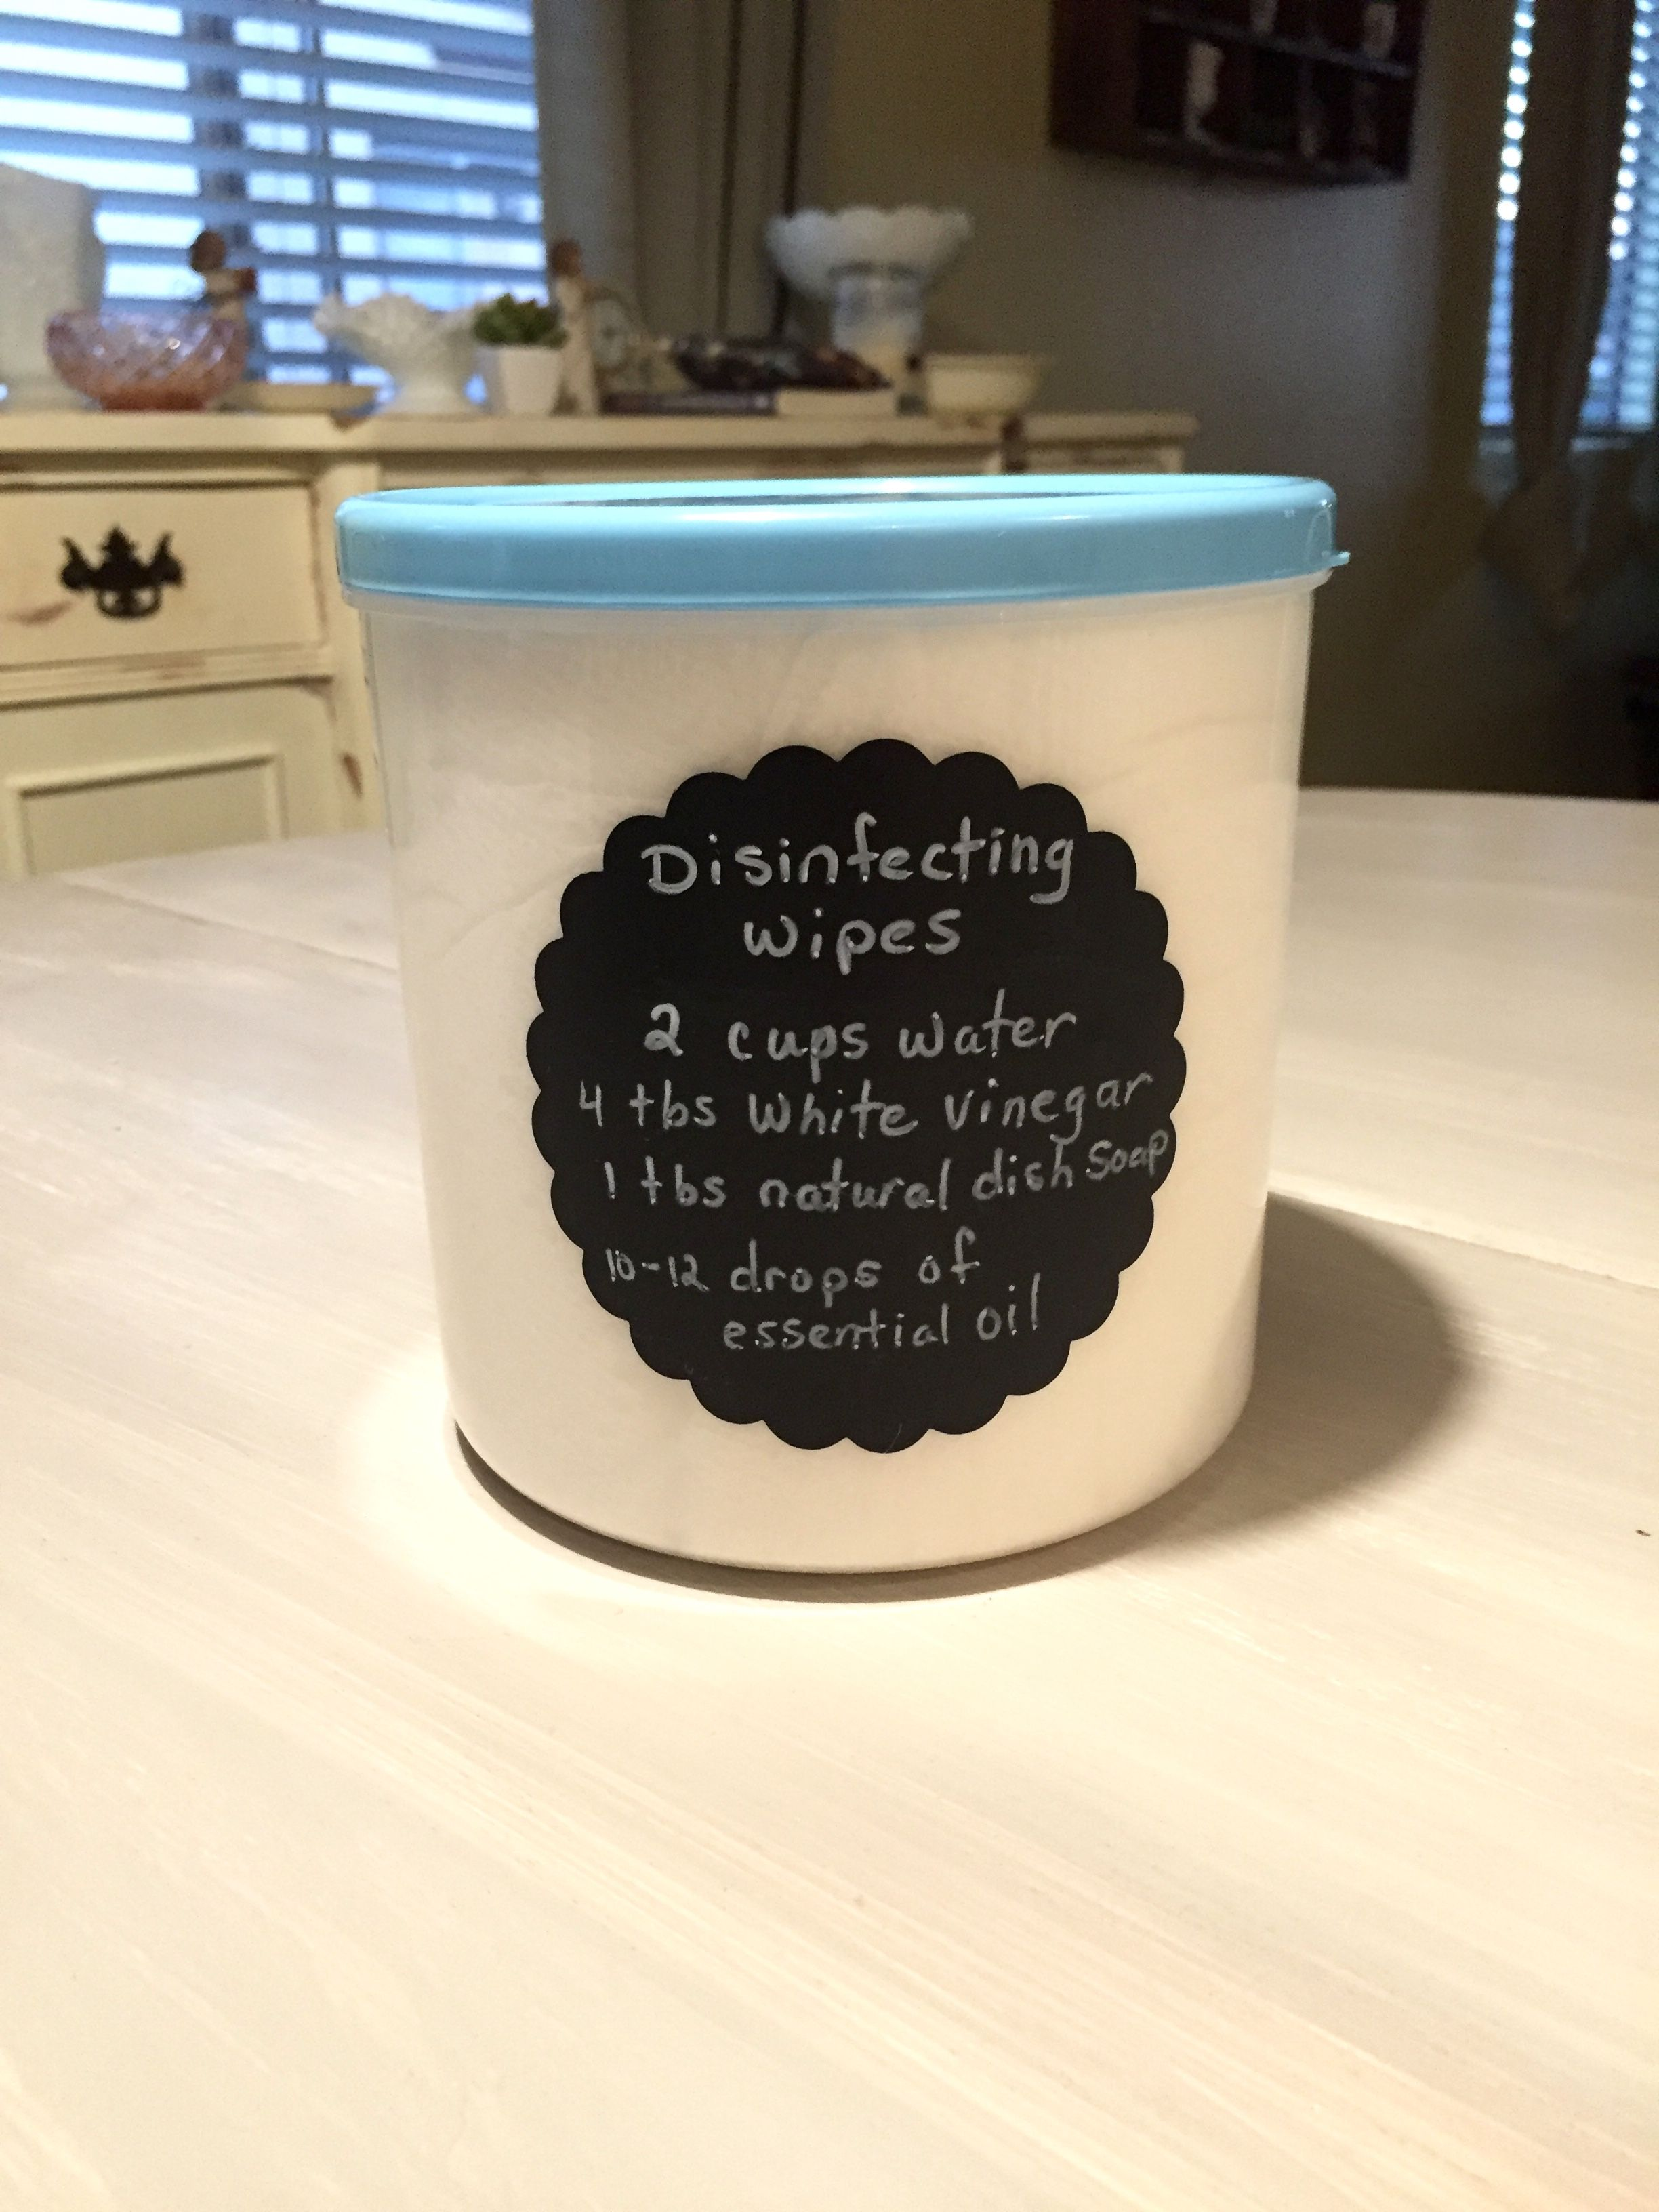 DIY Disinfecting Wipes Disinfecting wipes, Homemade